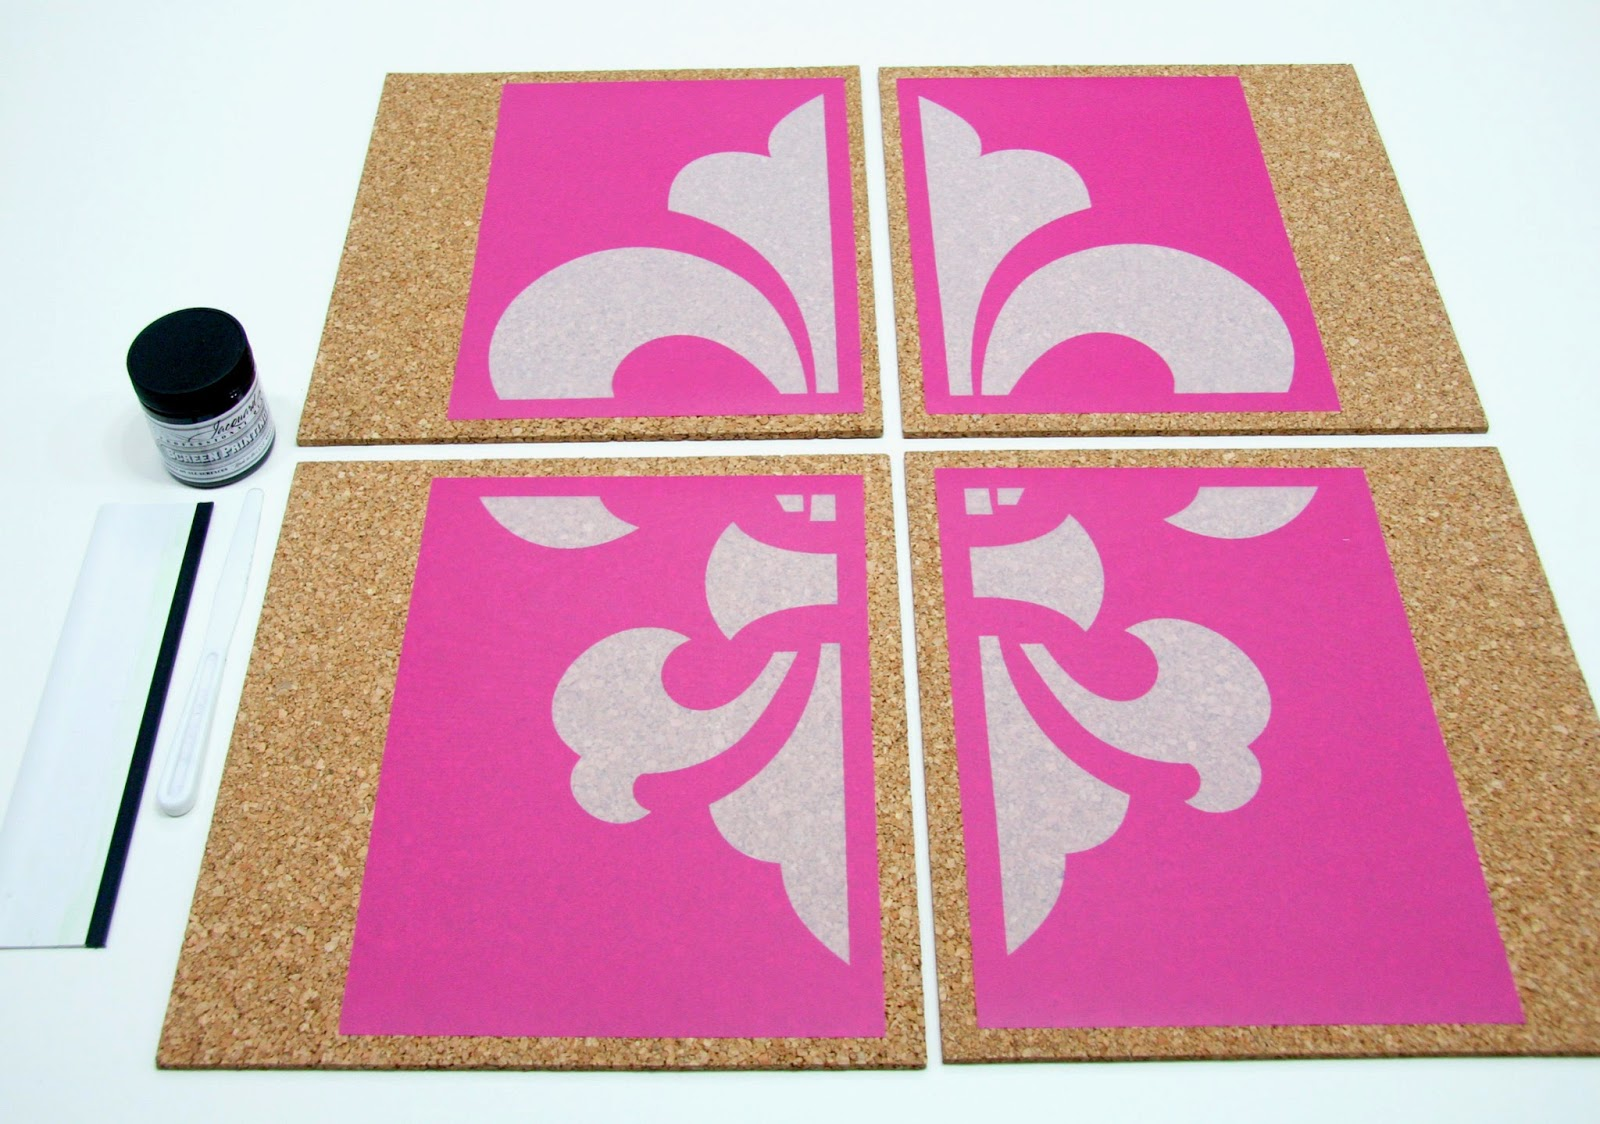 Fleur De Lis StencilPro Stencils and Cork Panels Laid Out on Table